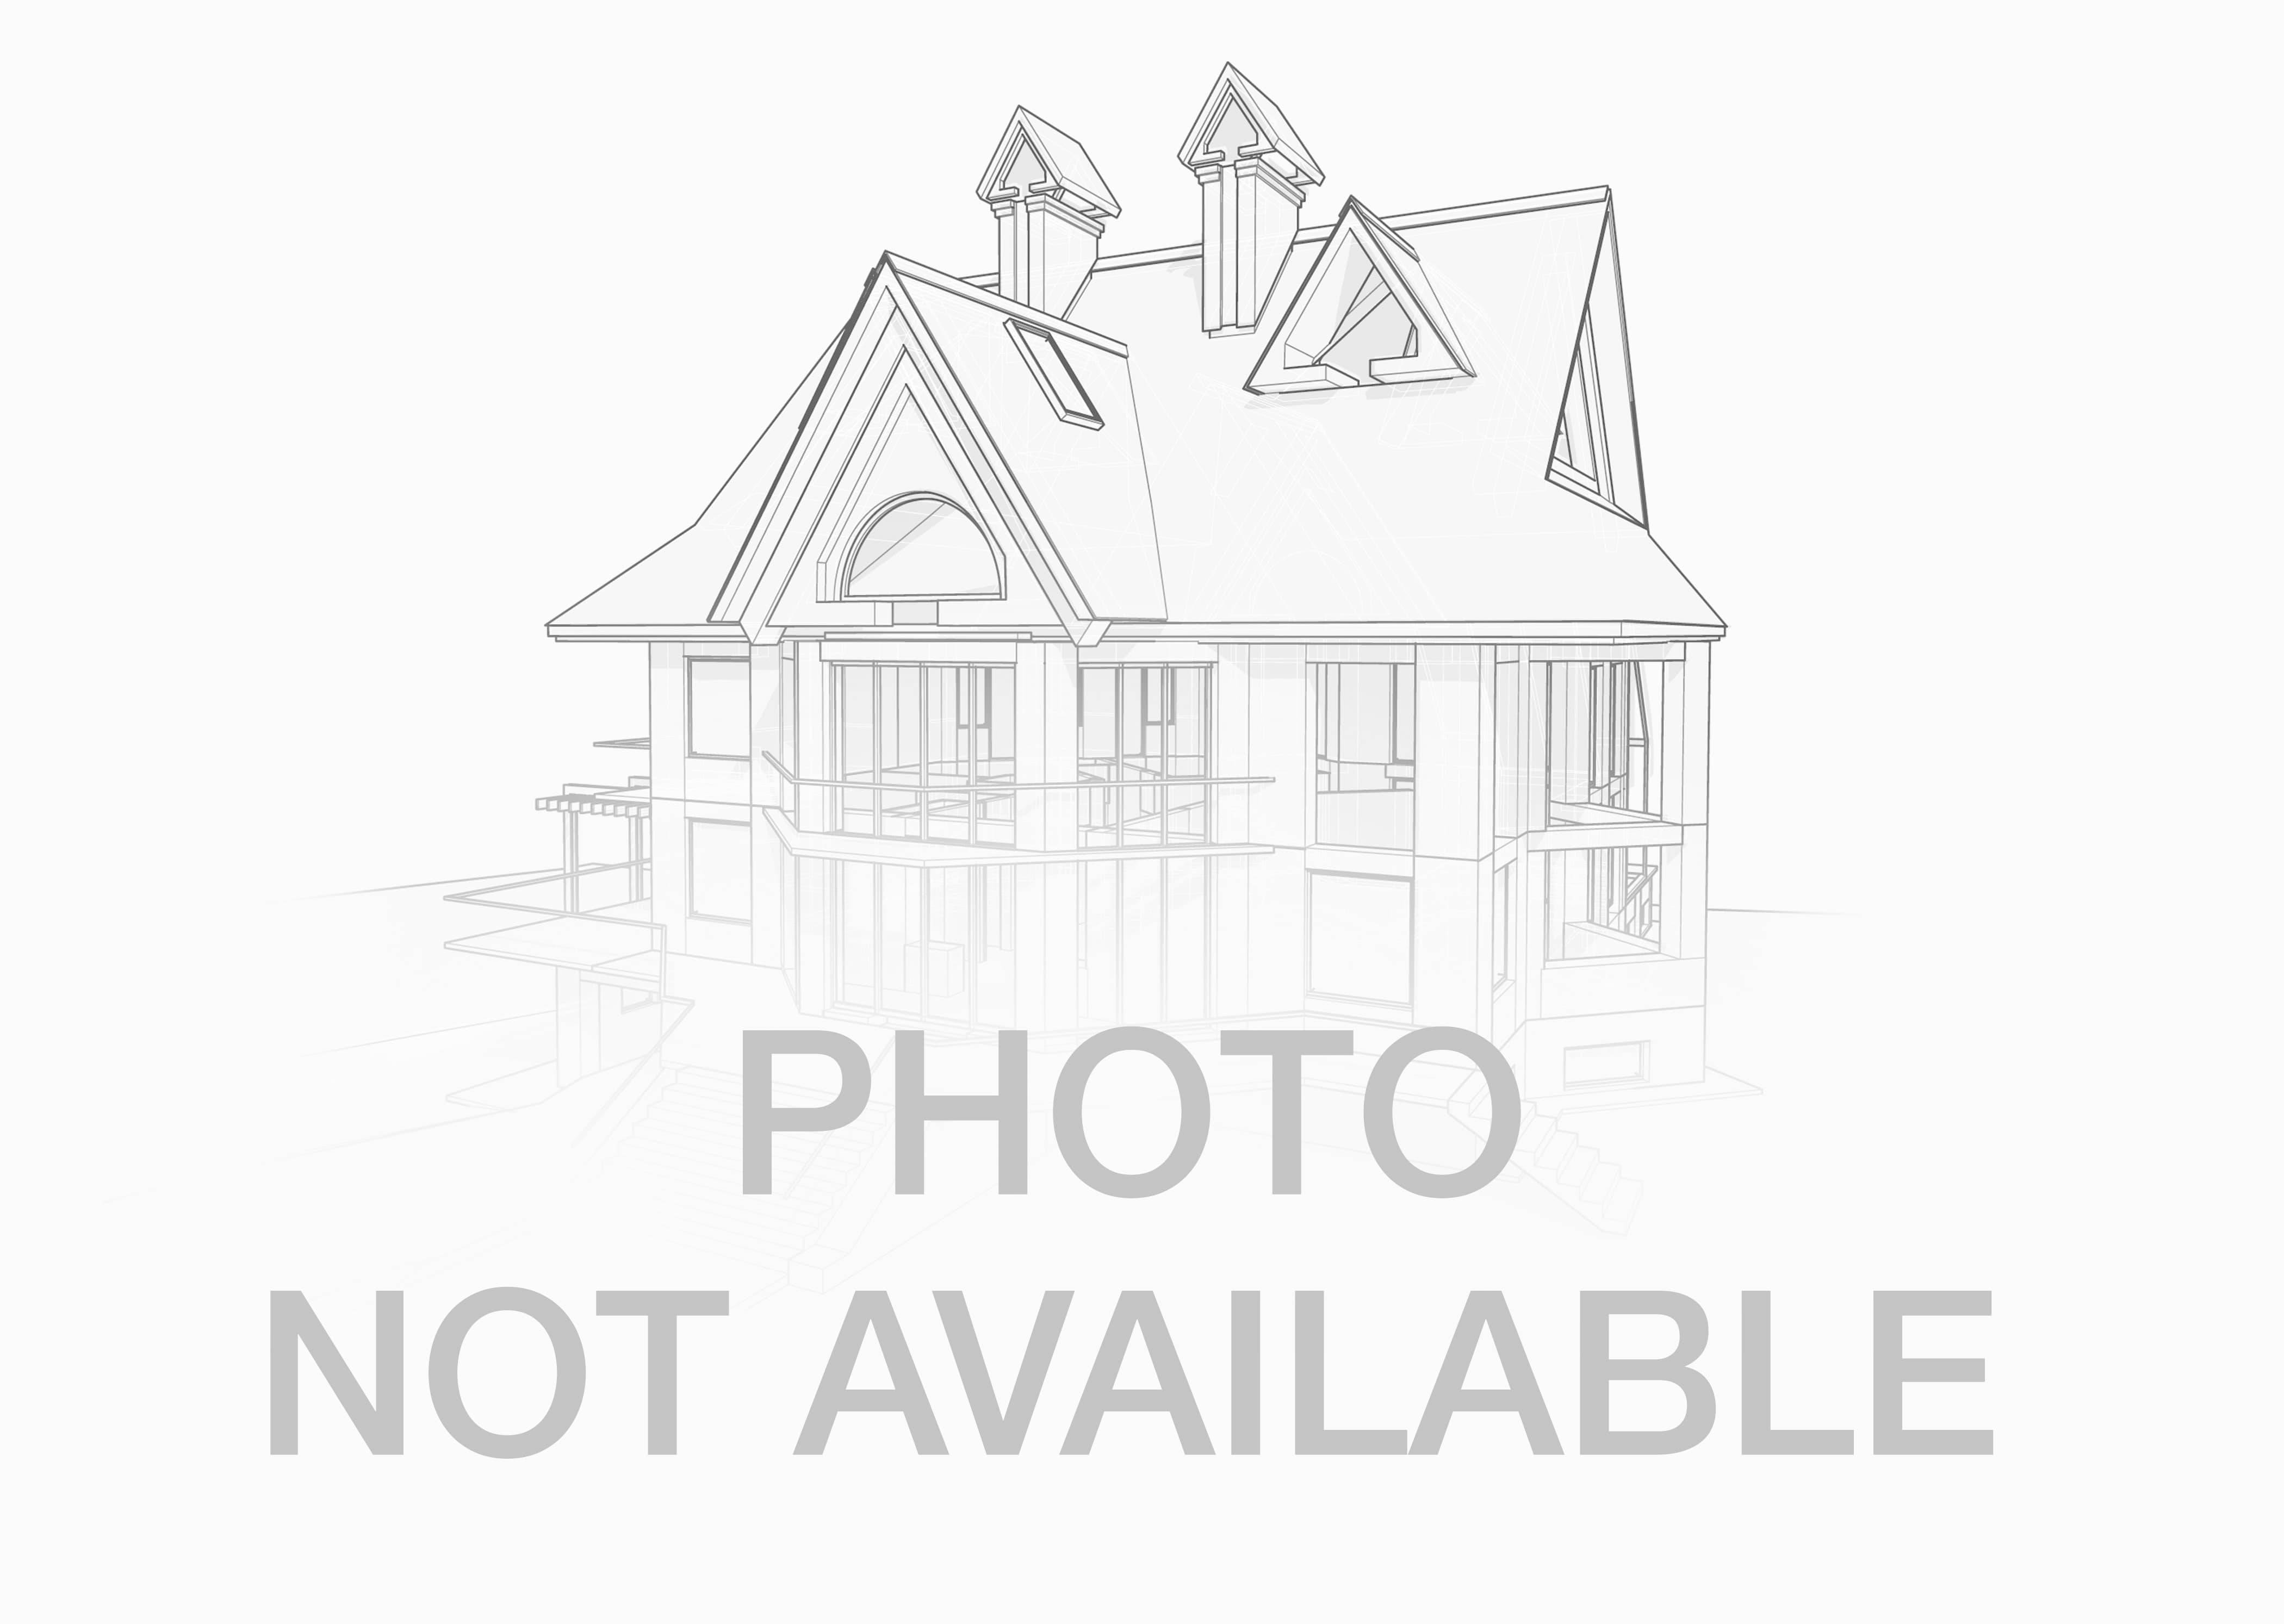 411 Dickens Dr, Lancaster, PA 17603